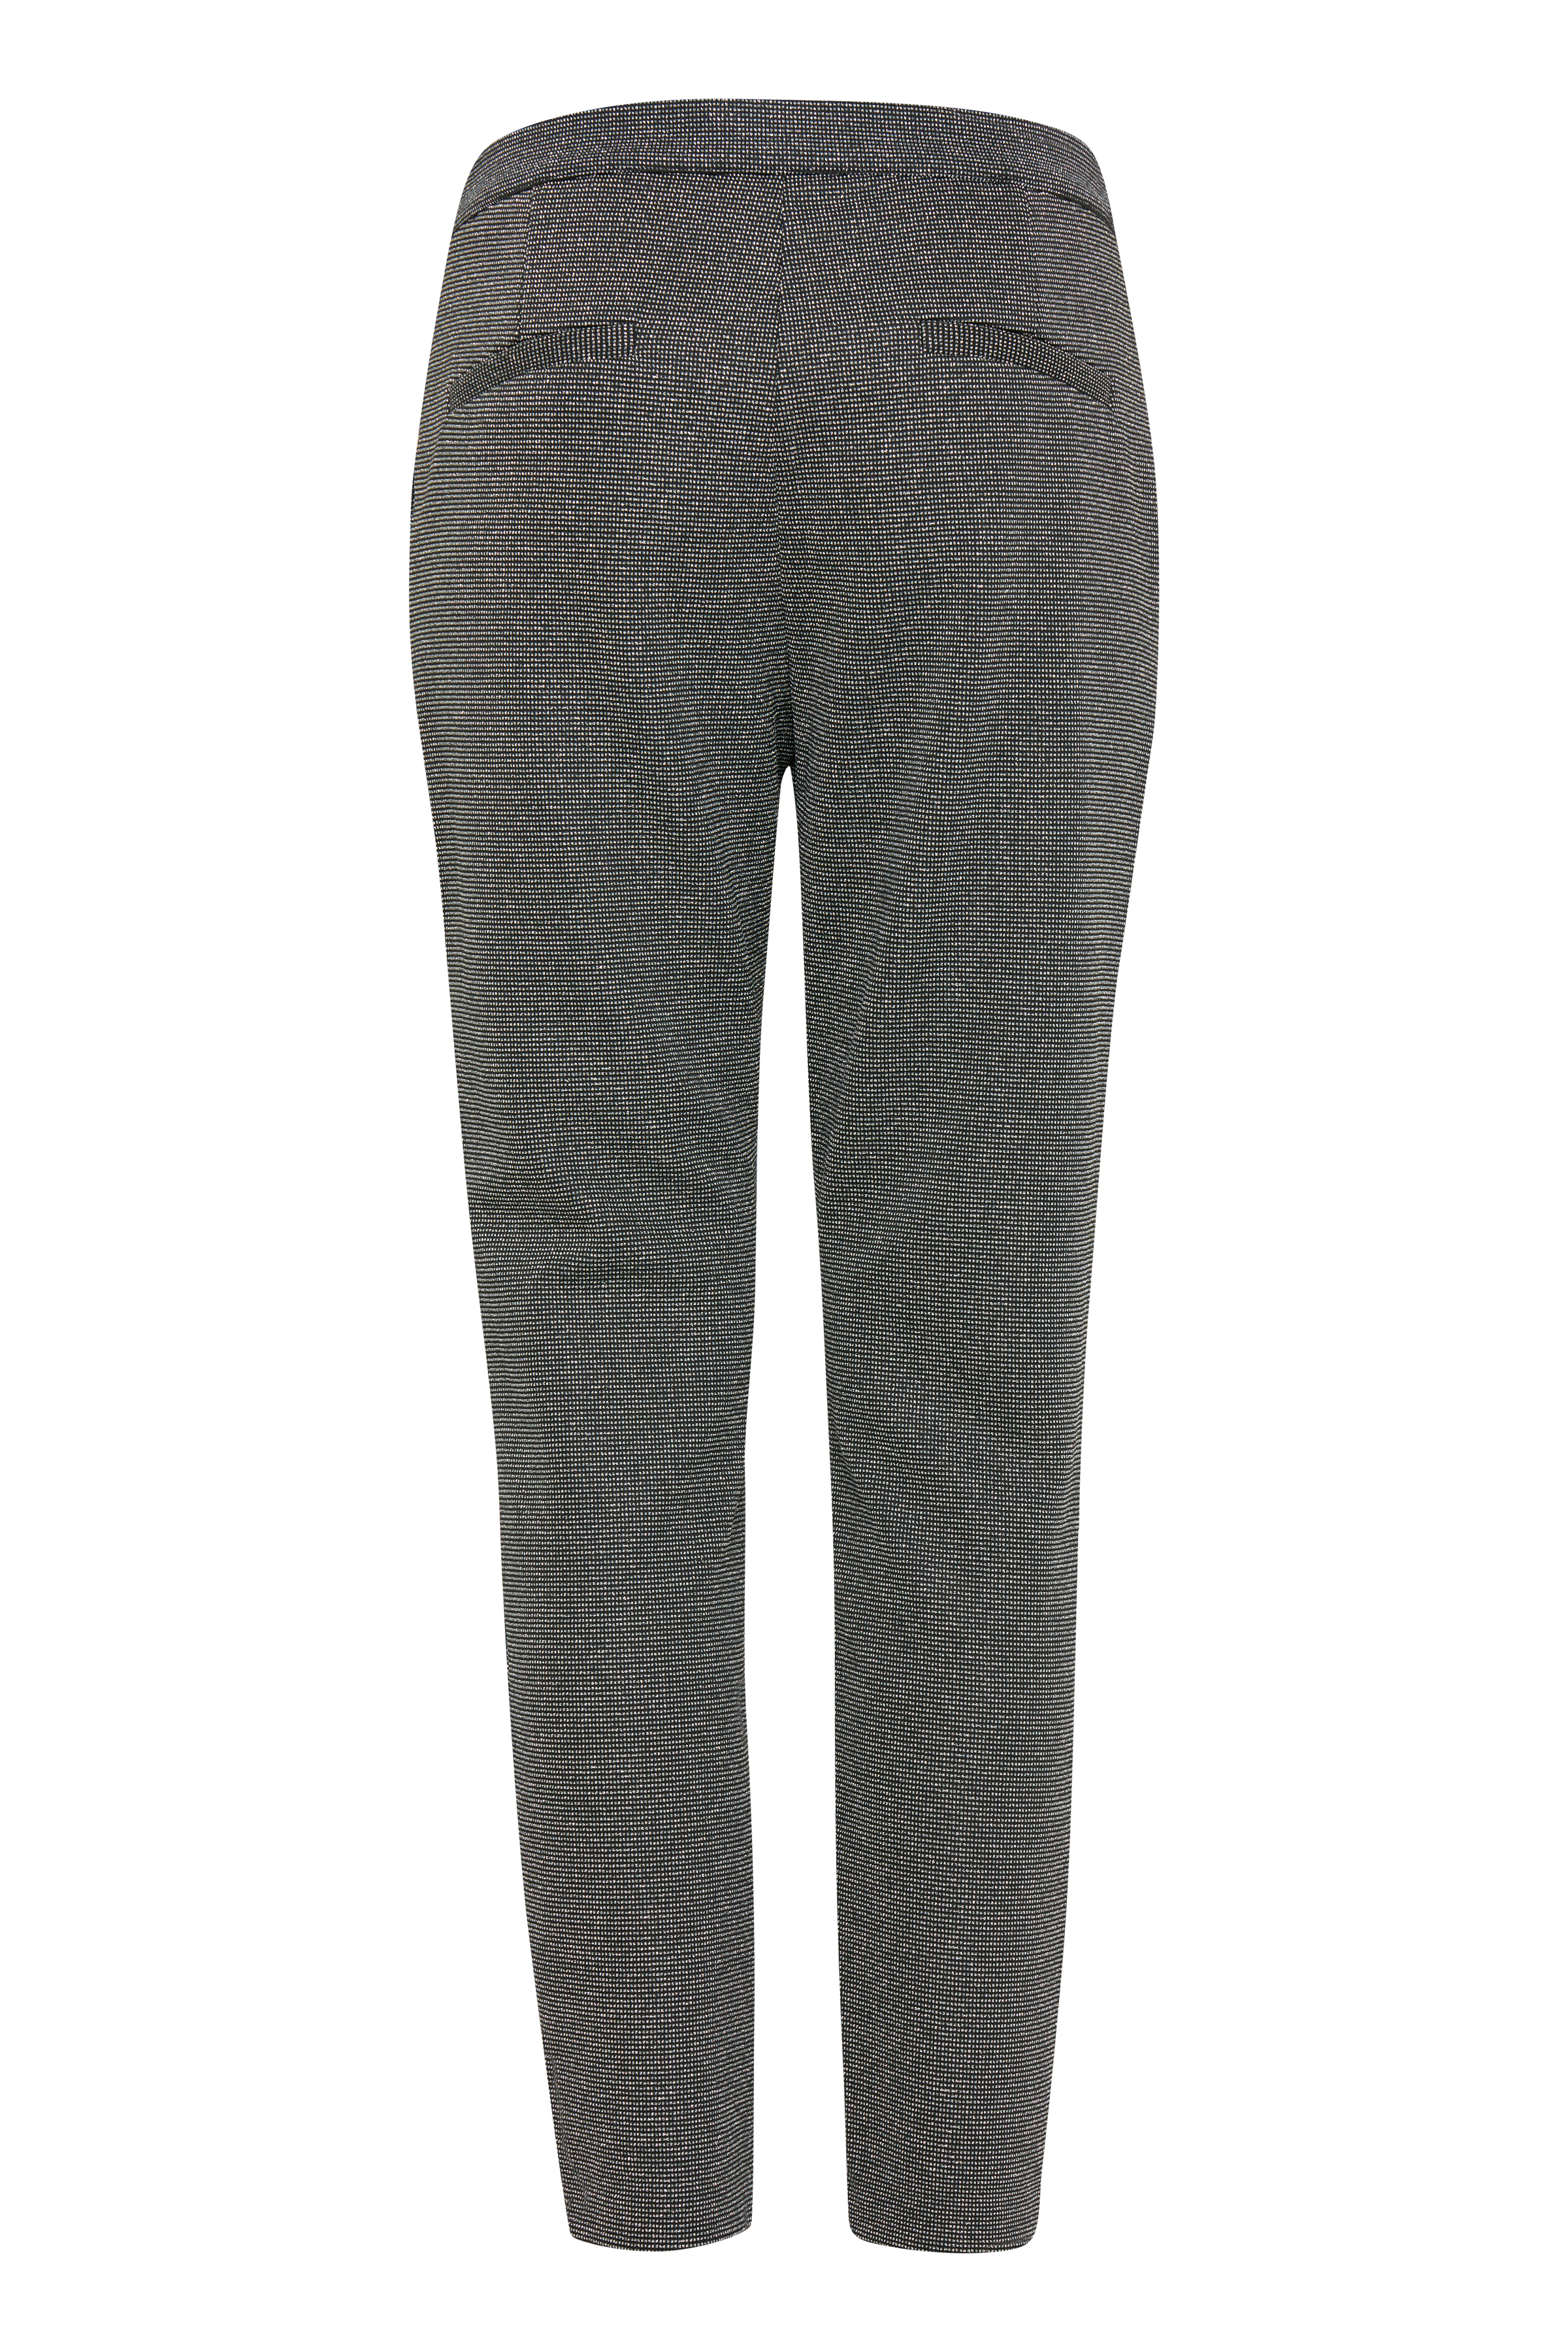 Black w. silver Pants Casual fra b.young – Køb Black w. silver Pants Casual fra str. S-XXL her